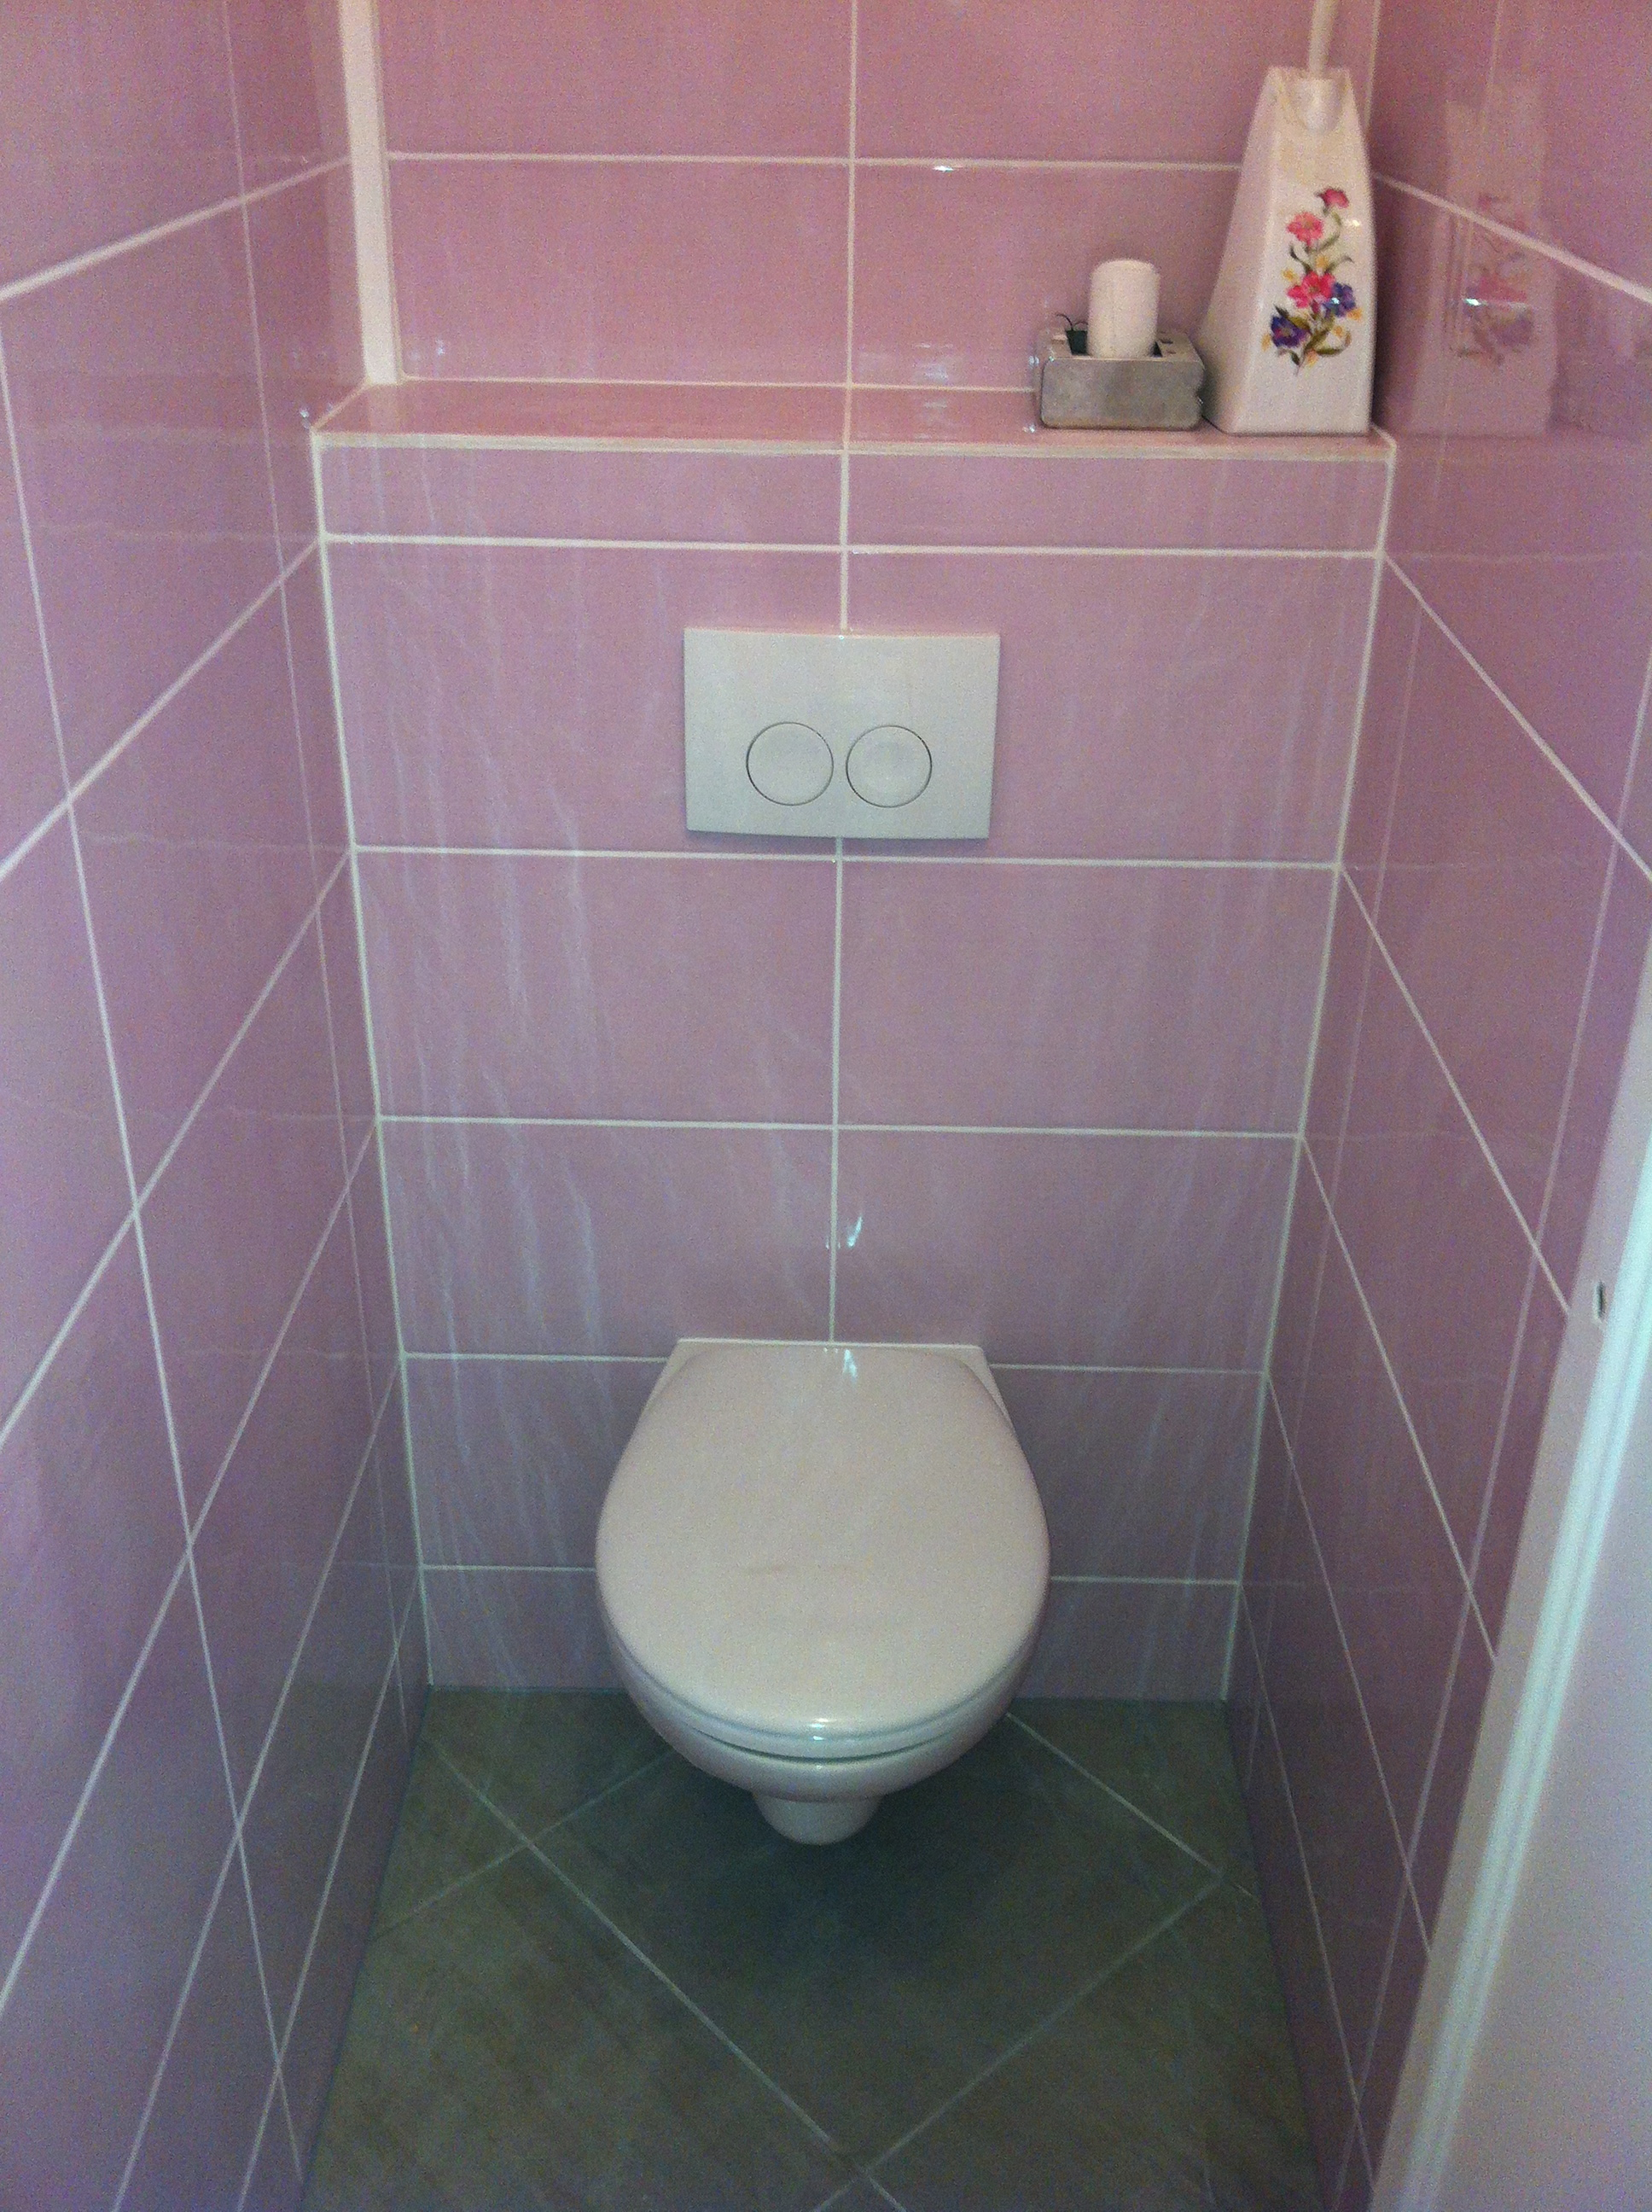 Wc suspendu wc encastr dream house - Carrelage toilettes photos ...